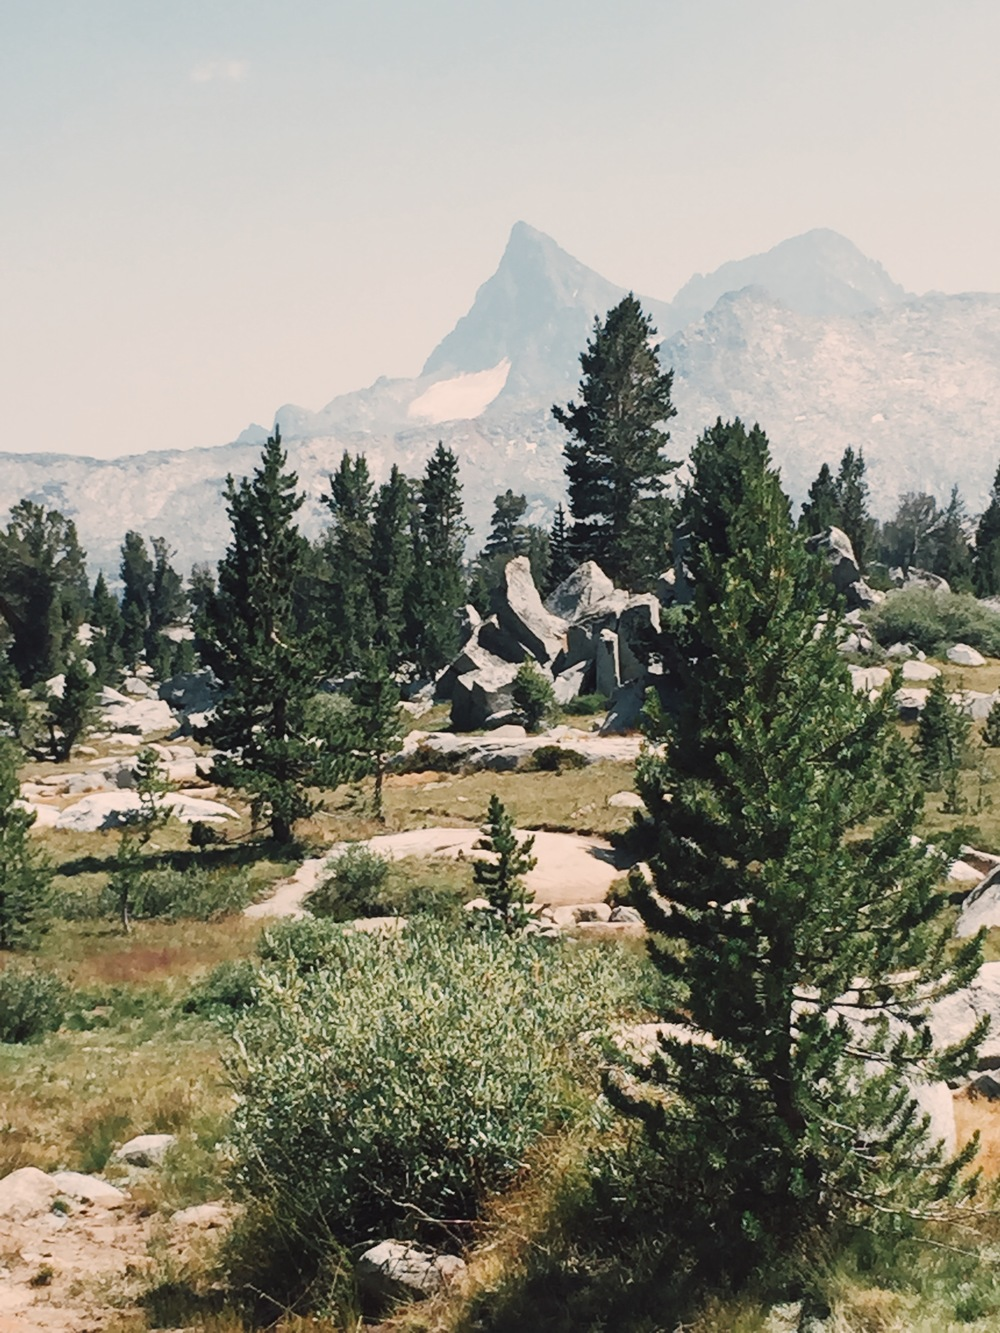 The view toward the Ritter Range shortly after crossing into Ansel Adams Wilderness from Yosemite.